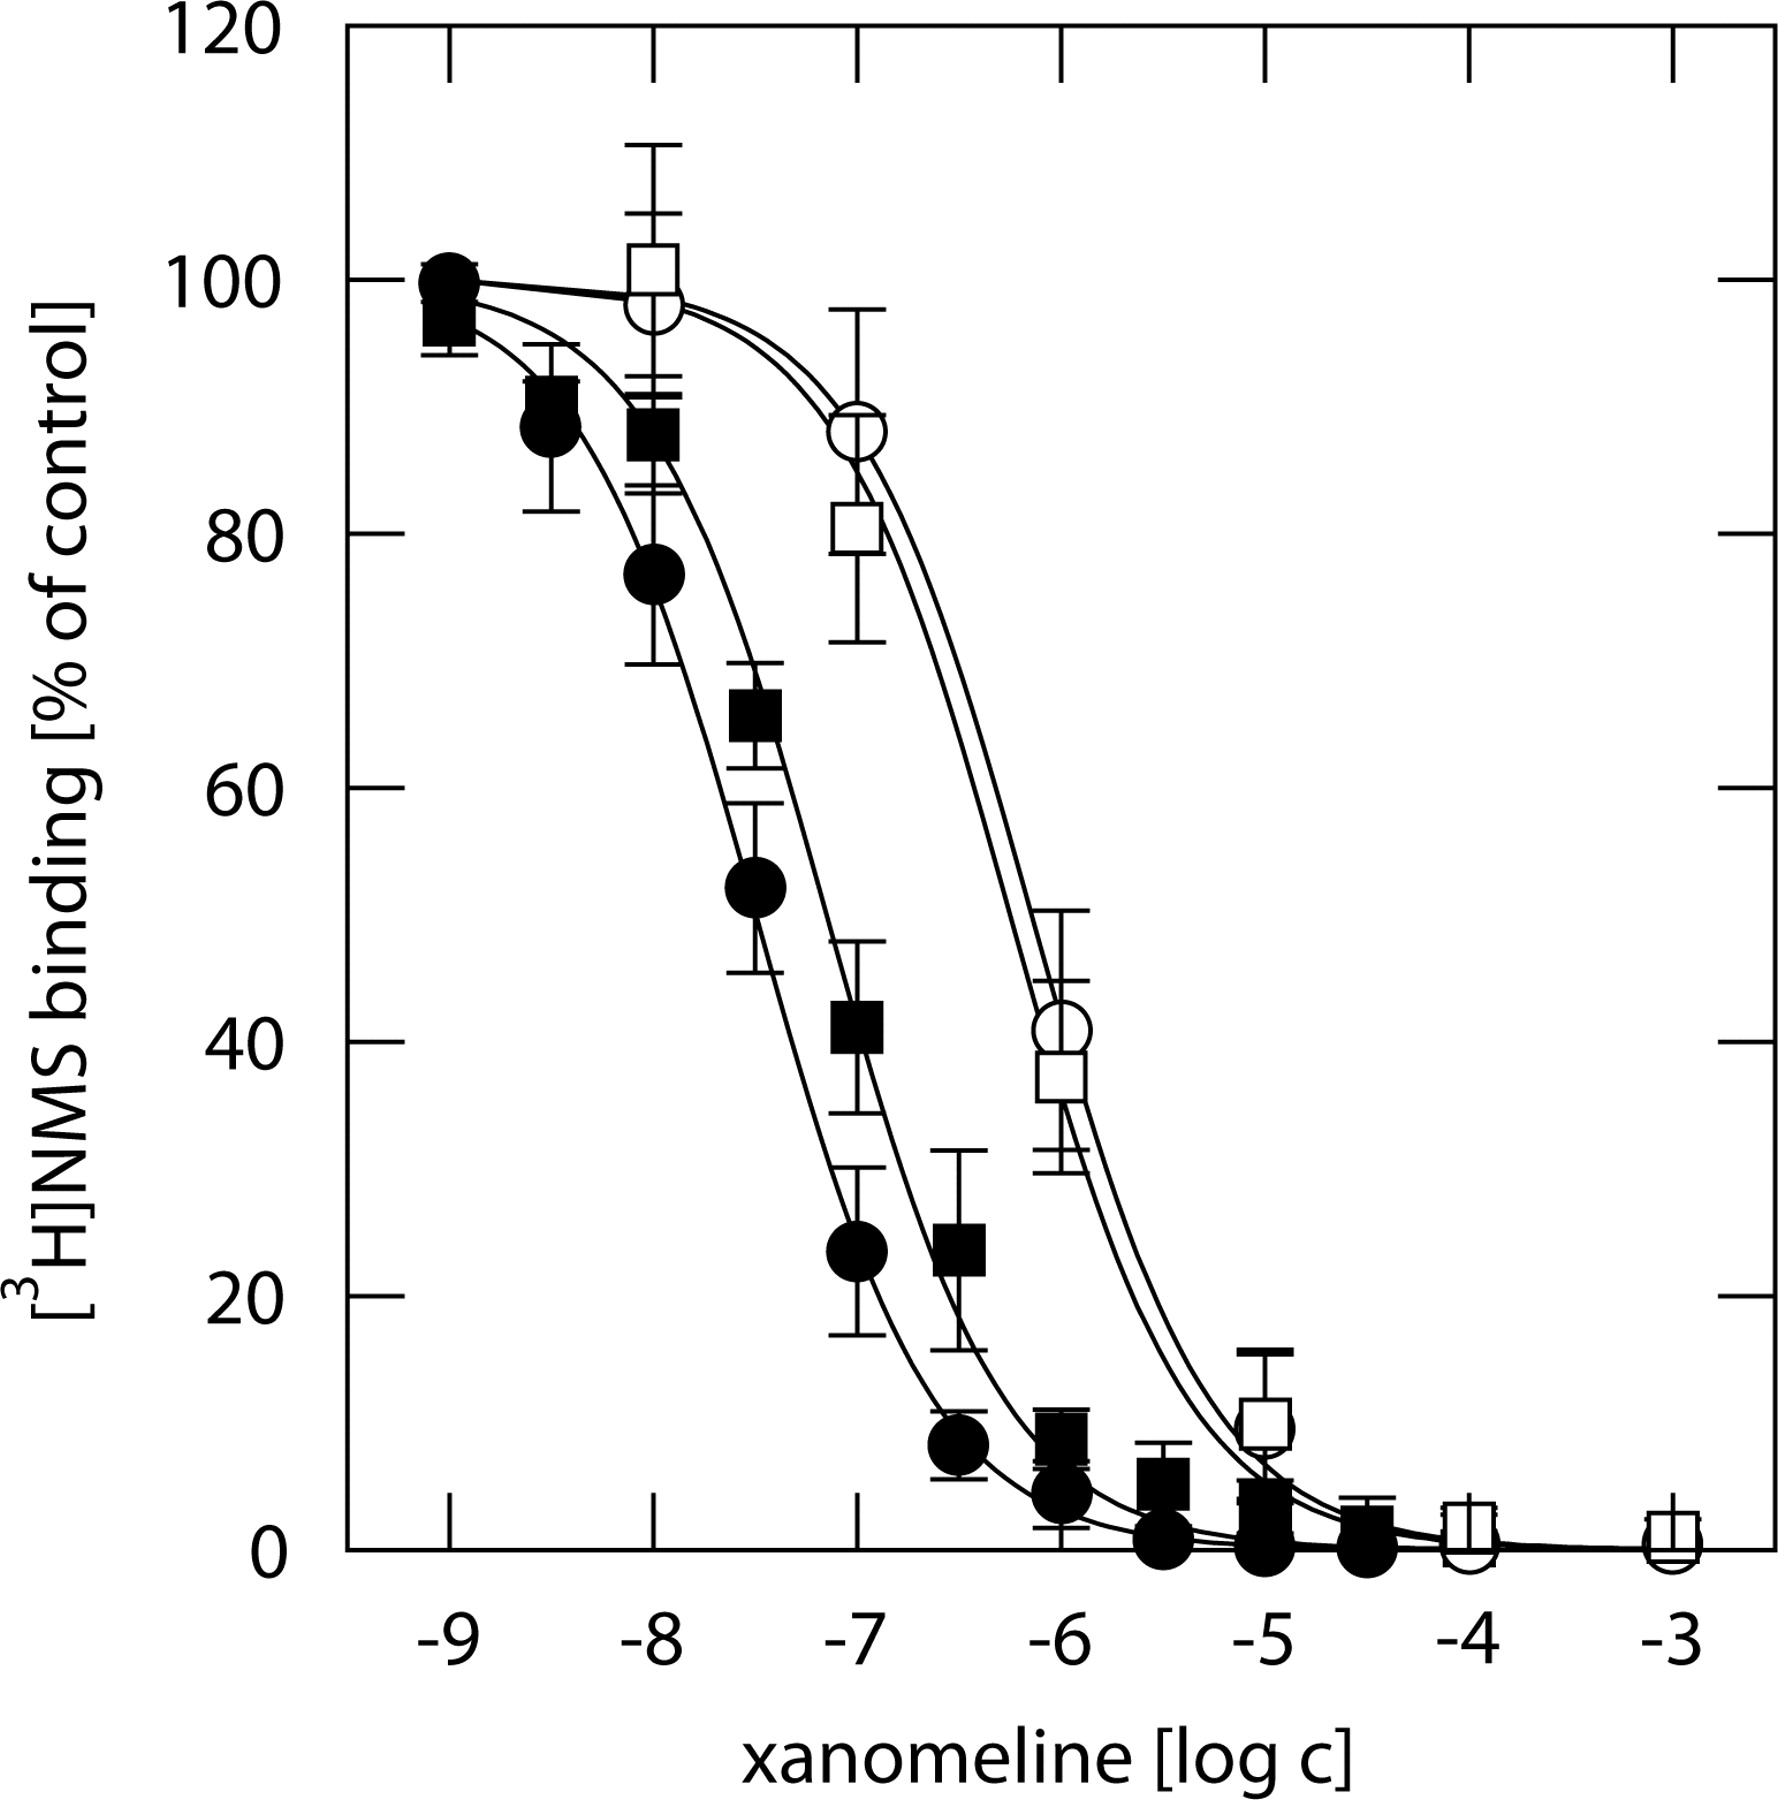 Differences in Kinetics of Xanomeline Binding and